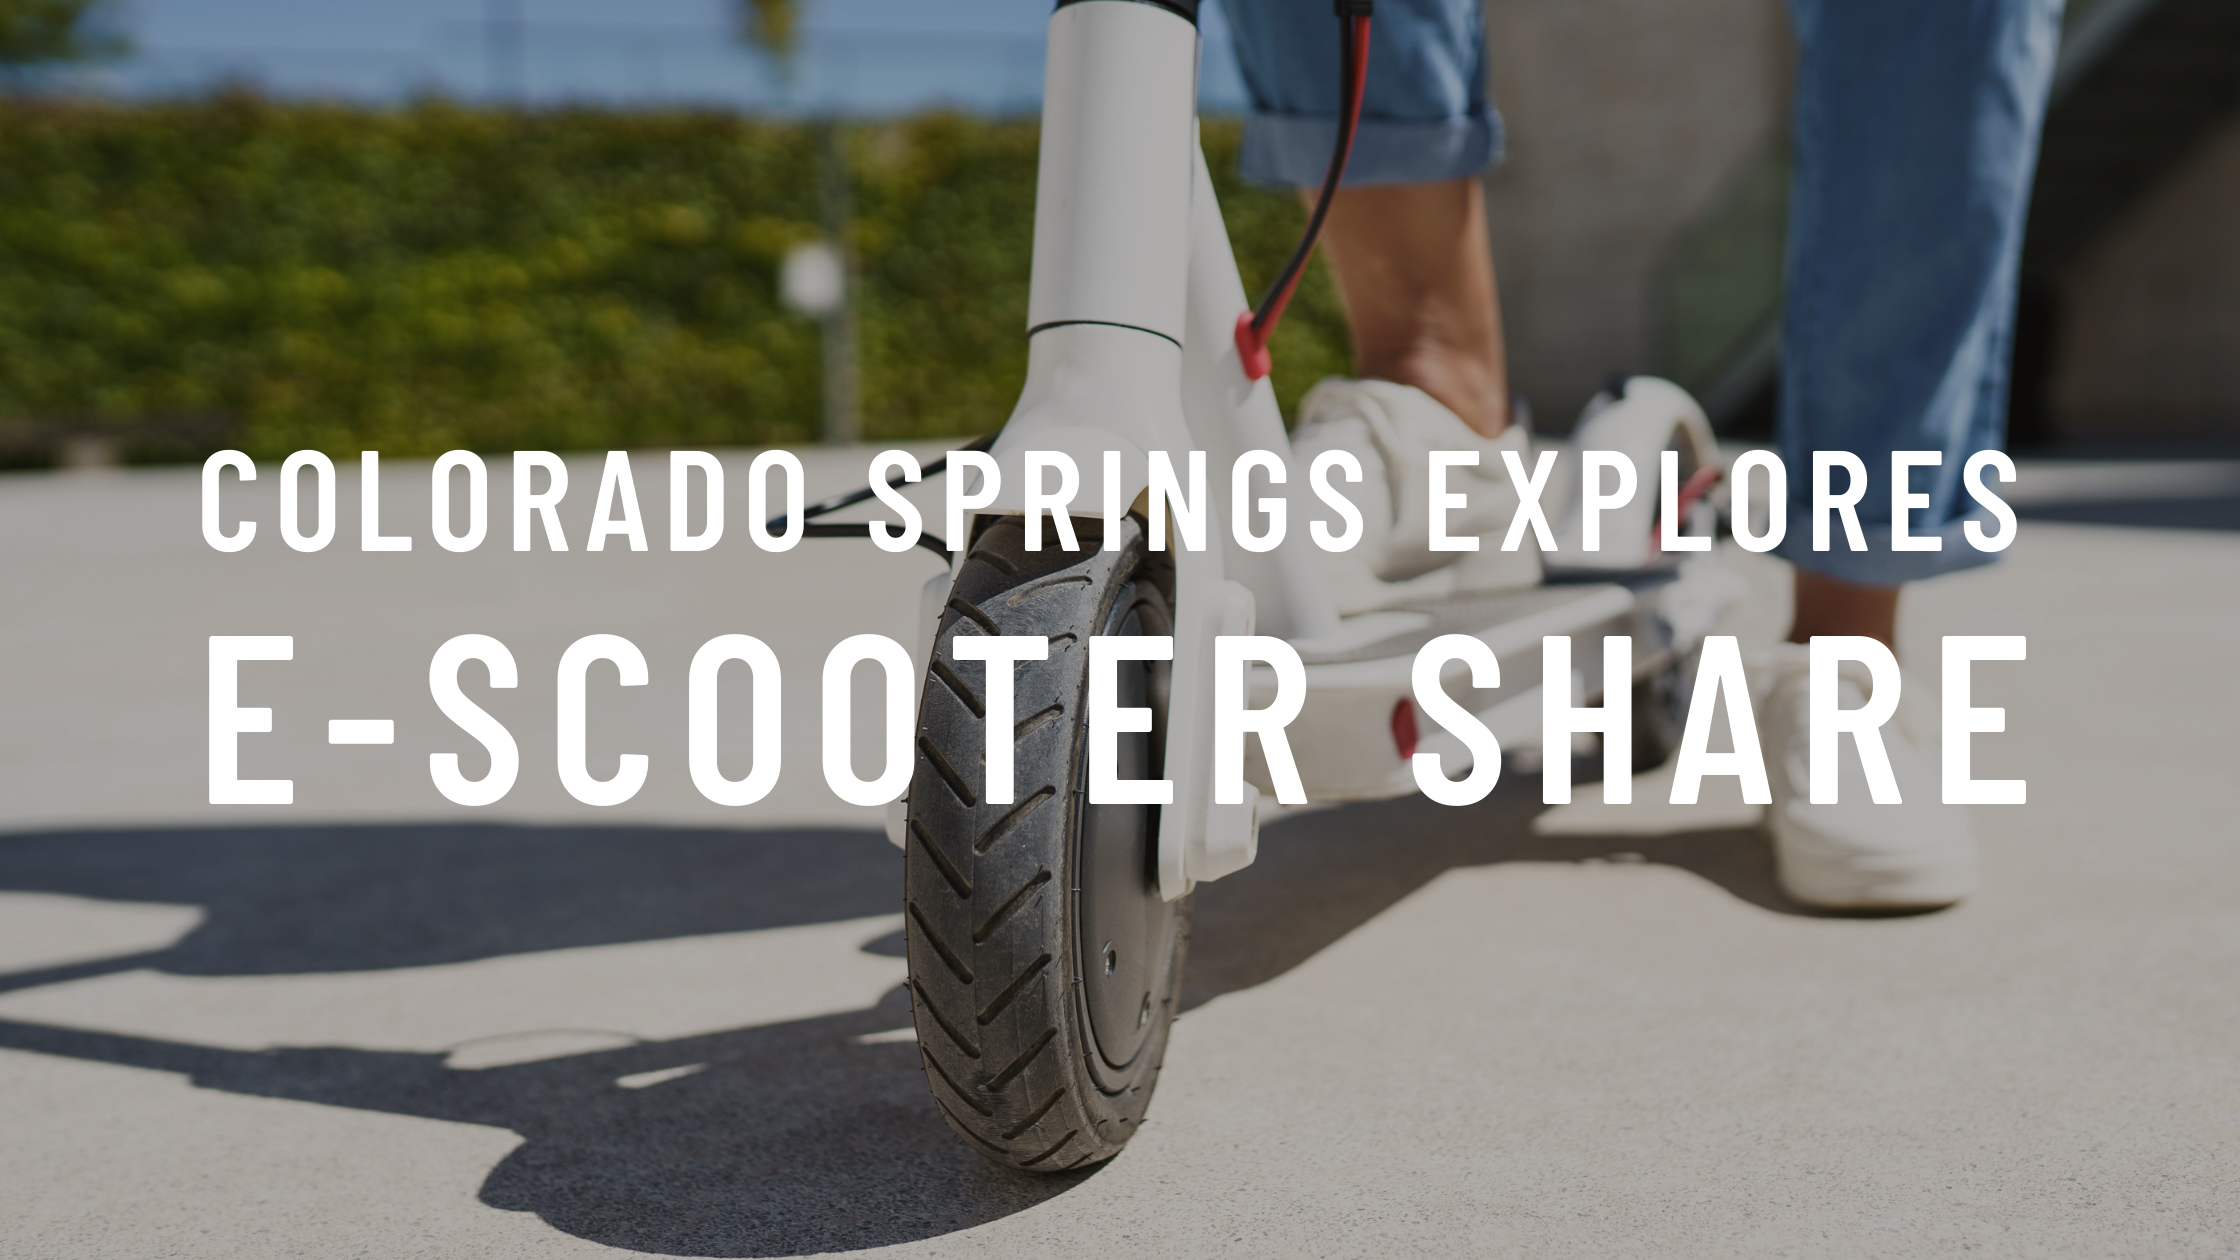 Colorado Springs Explores E-Scooter Share